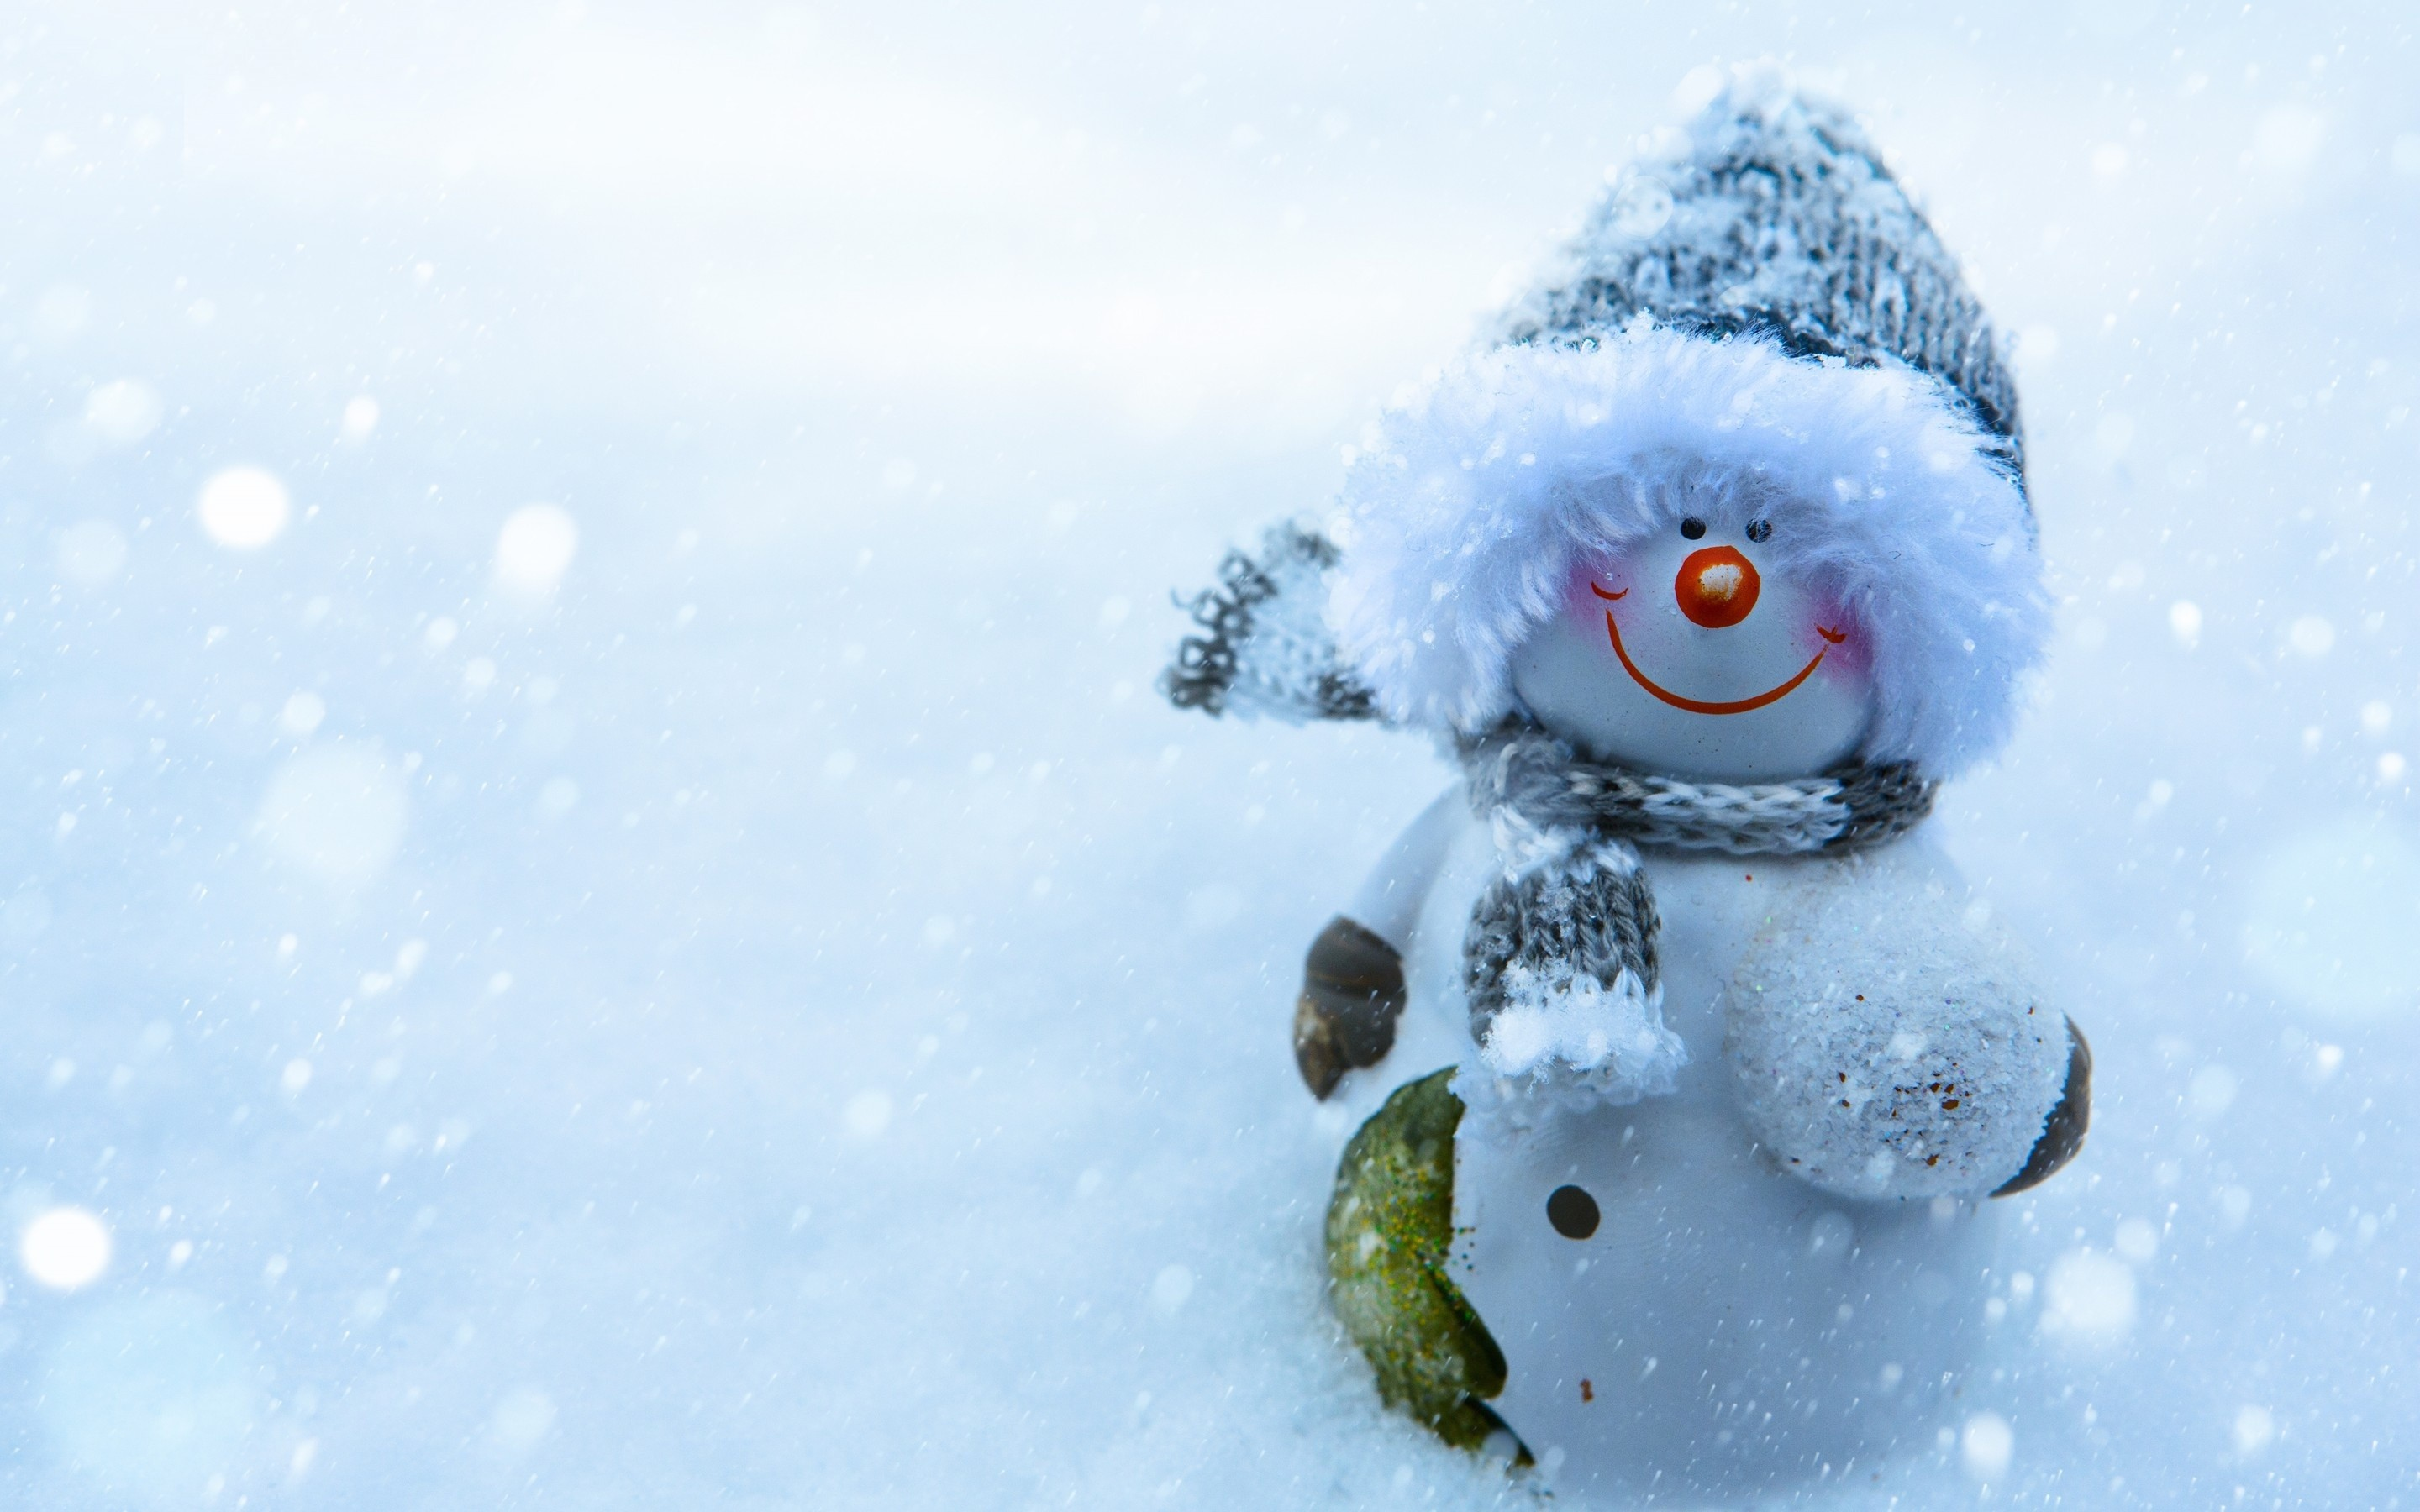 Res: 2880x1800, Snowman Widescreen Wallpaper 52518